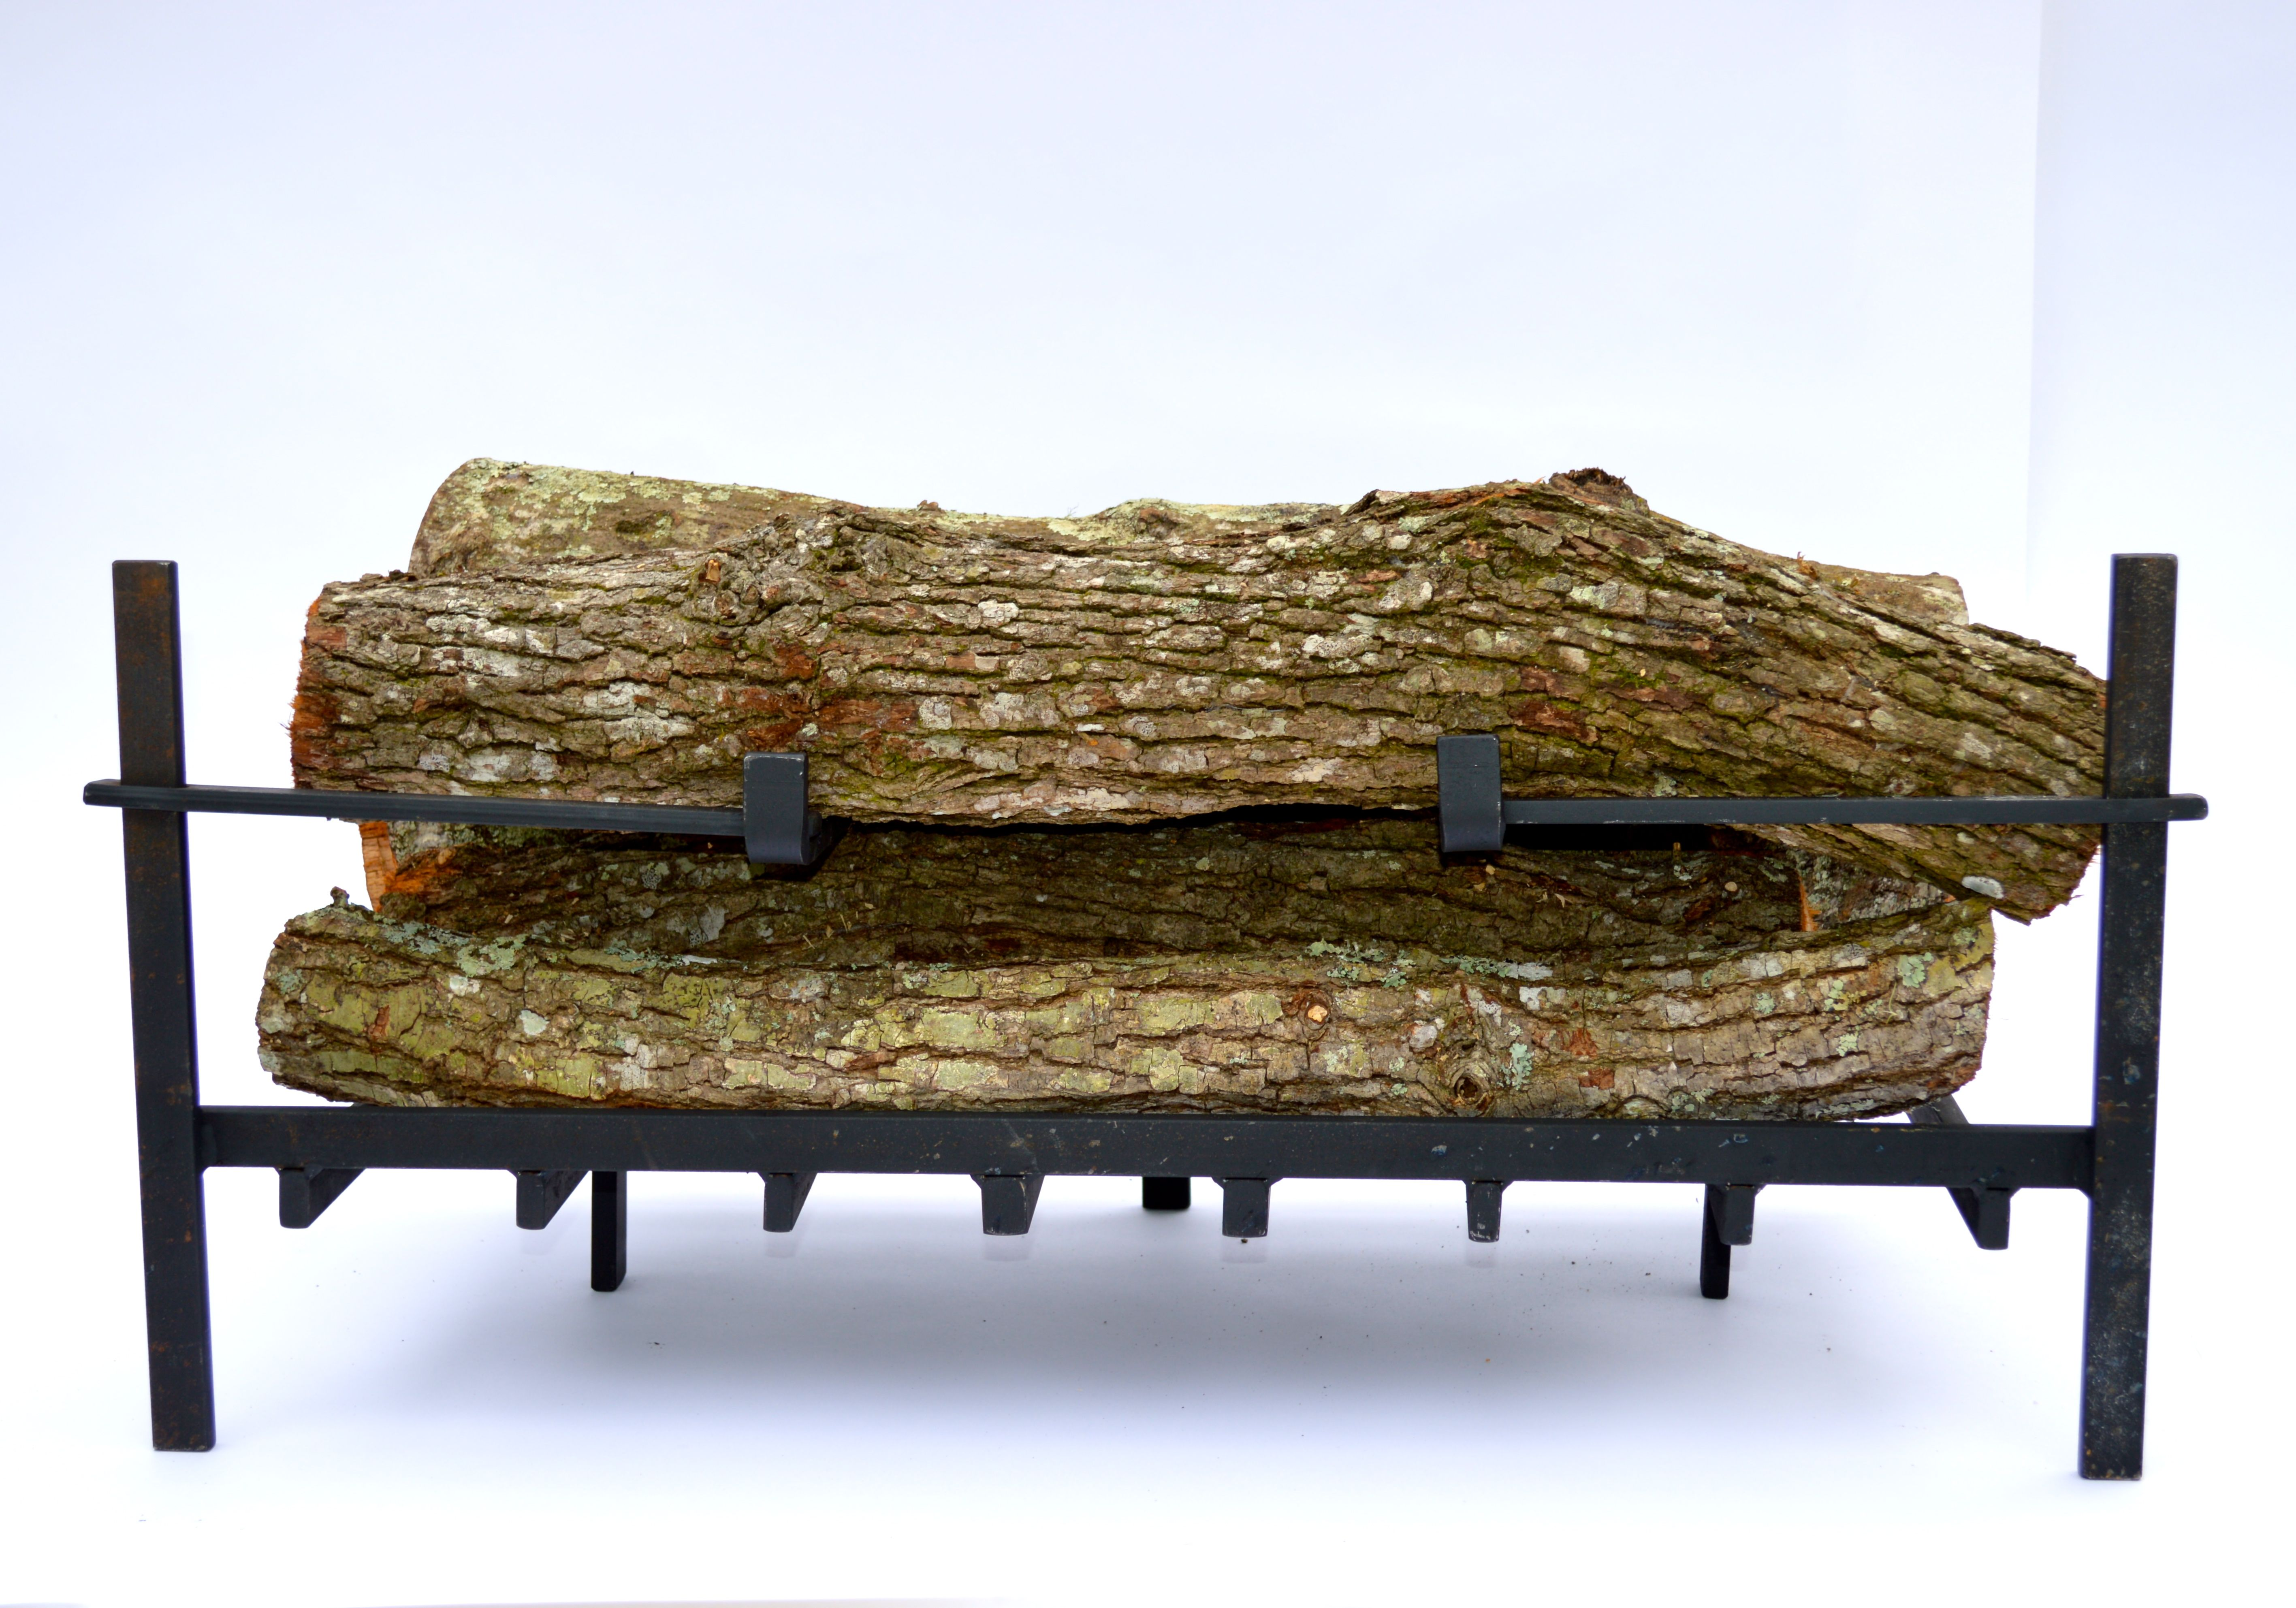 The Large Texas Fireframe Grate Can Handle Logs Up To 2 1 2 Feet